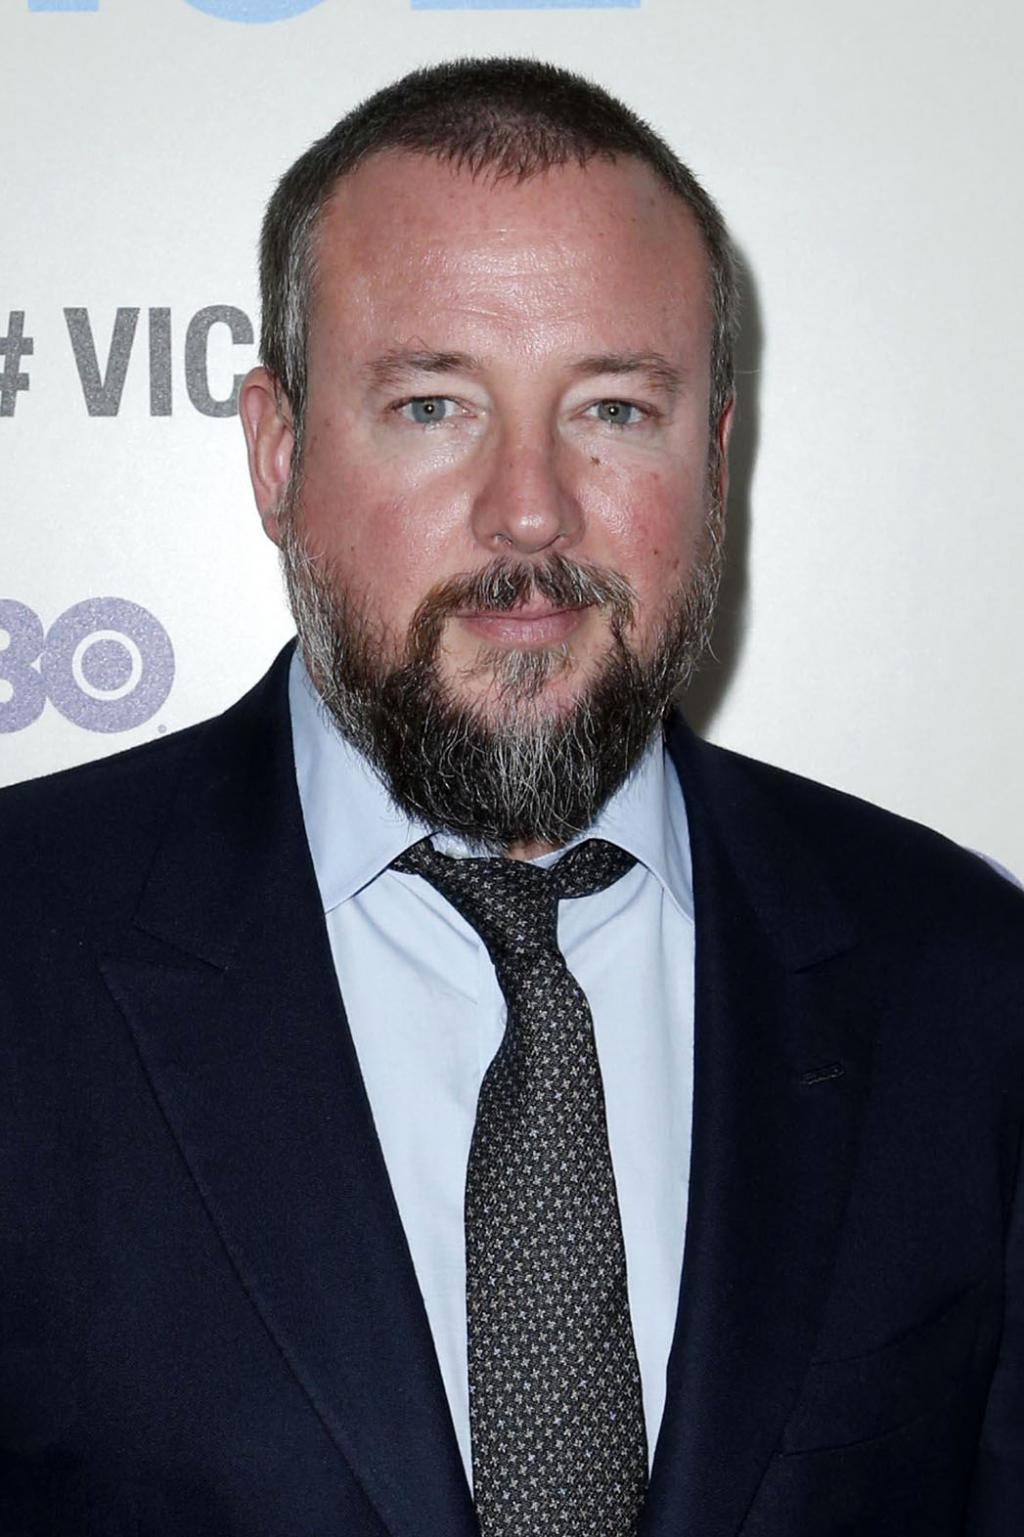 Shane Smith - The Hollywood Reporter